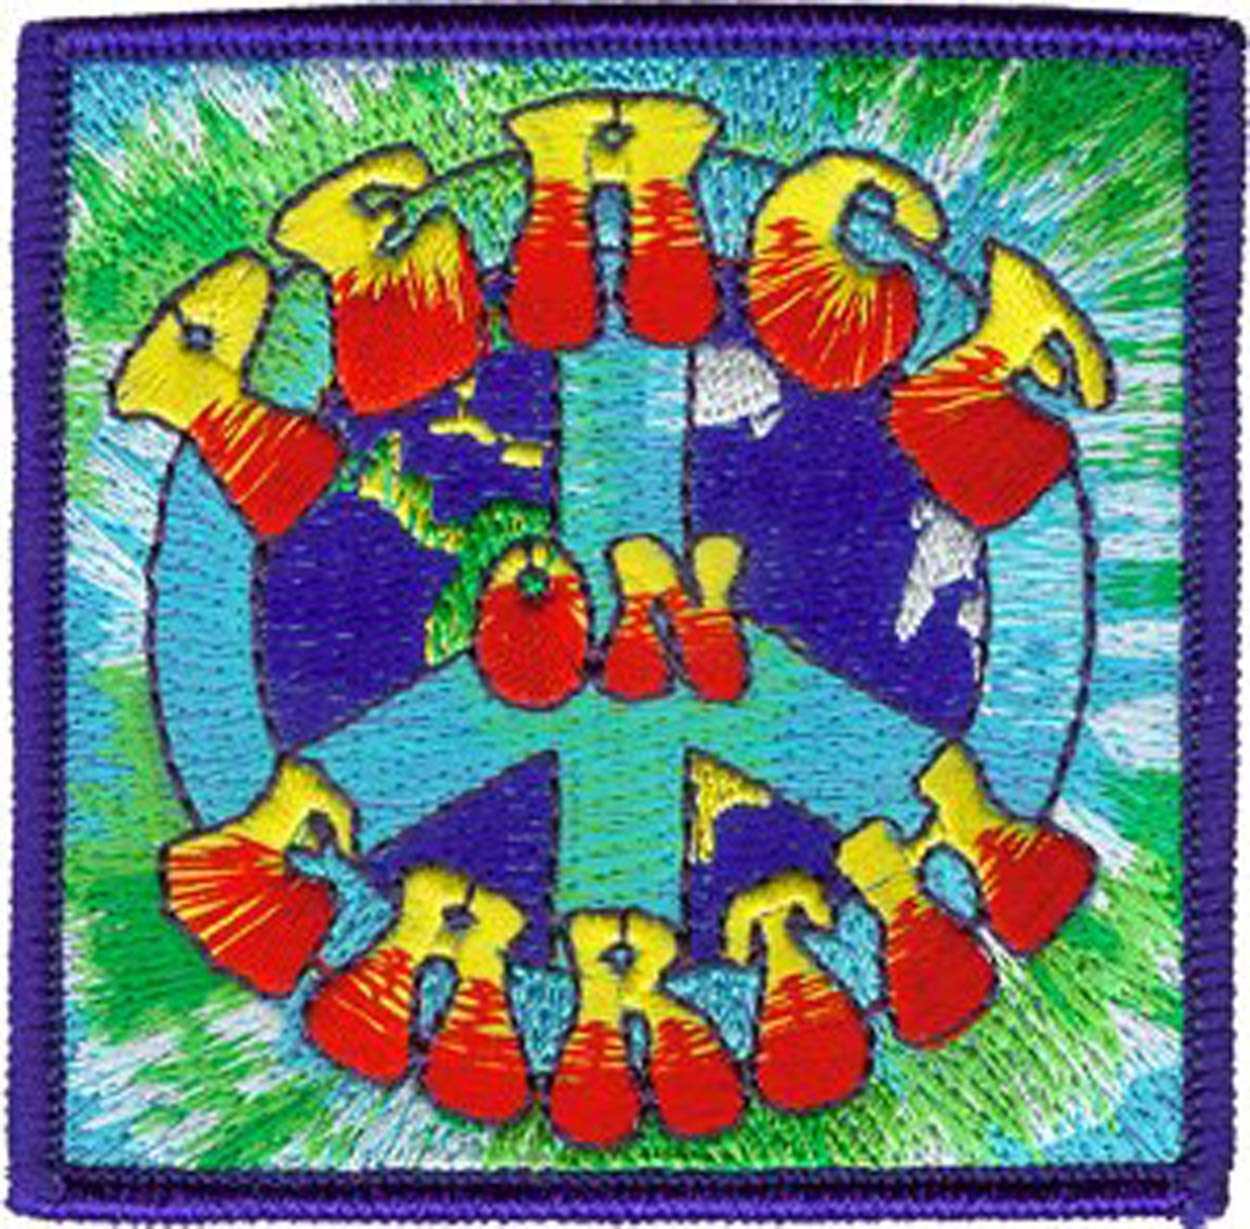 C&D Visionary P-3466 Peace Signs World Patch C&D Visionary Inc.